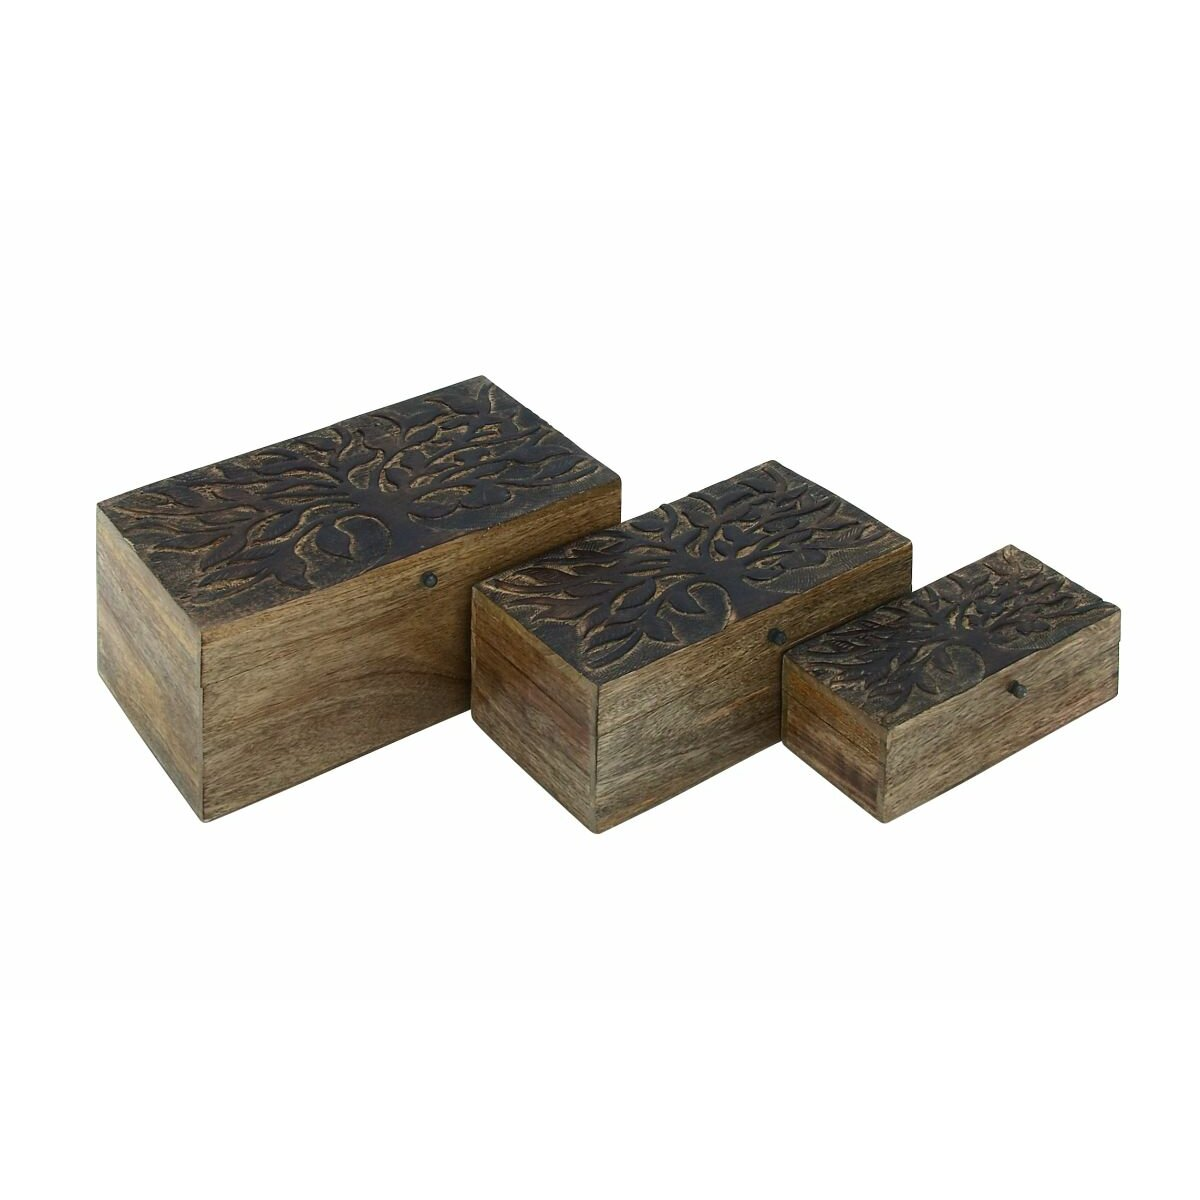 Cole grey 3 piece tree wood box set reviews for Decor containers coles